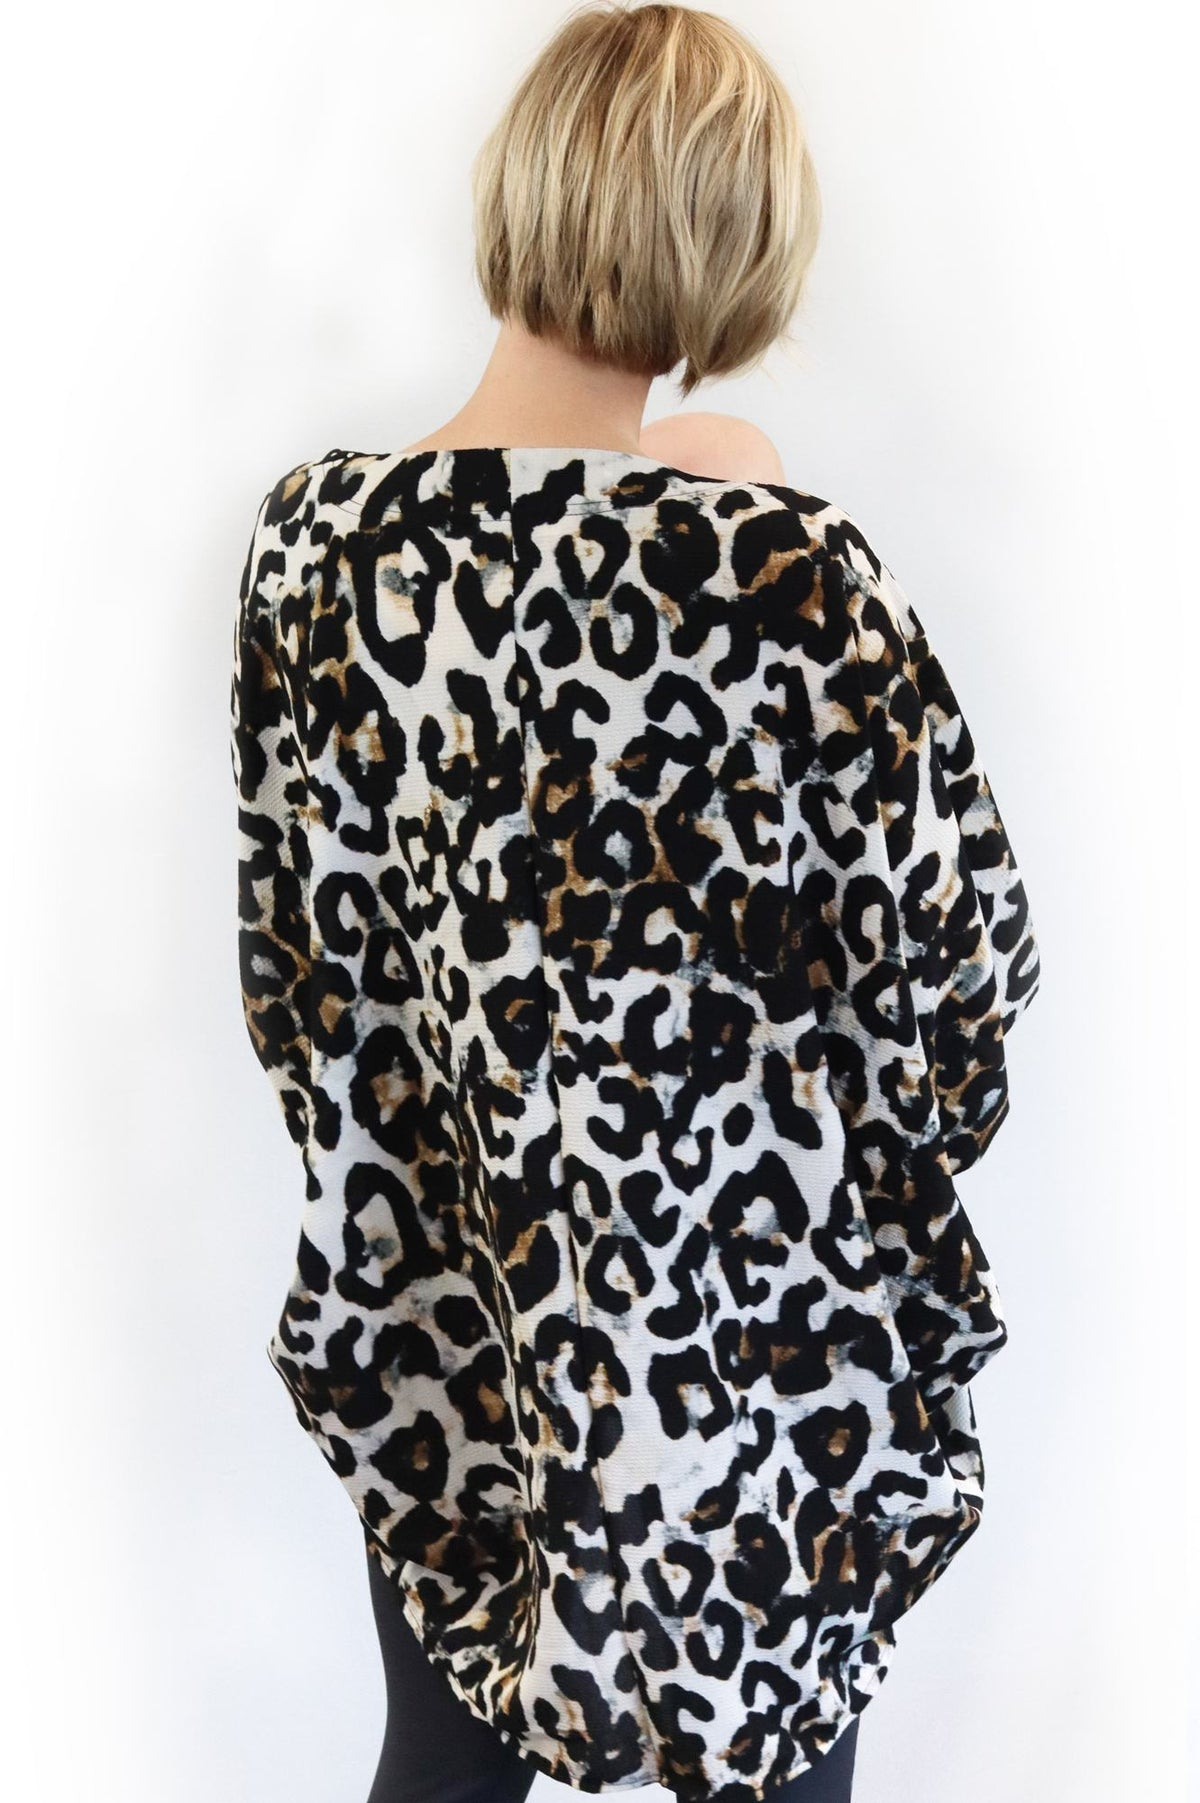 Nursing Cover-Up - Leopard Print